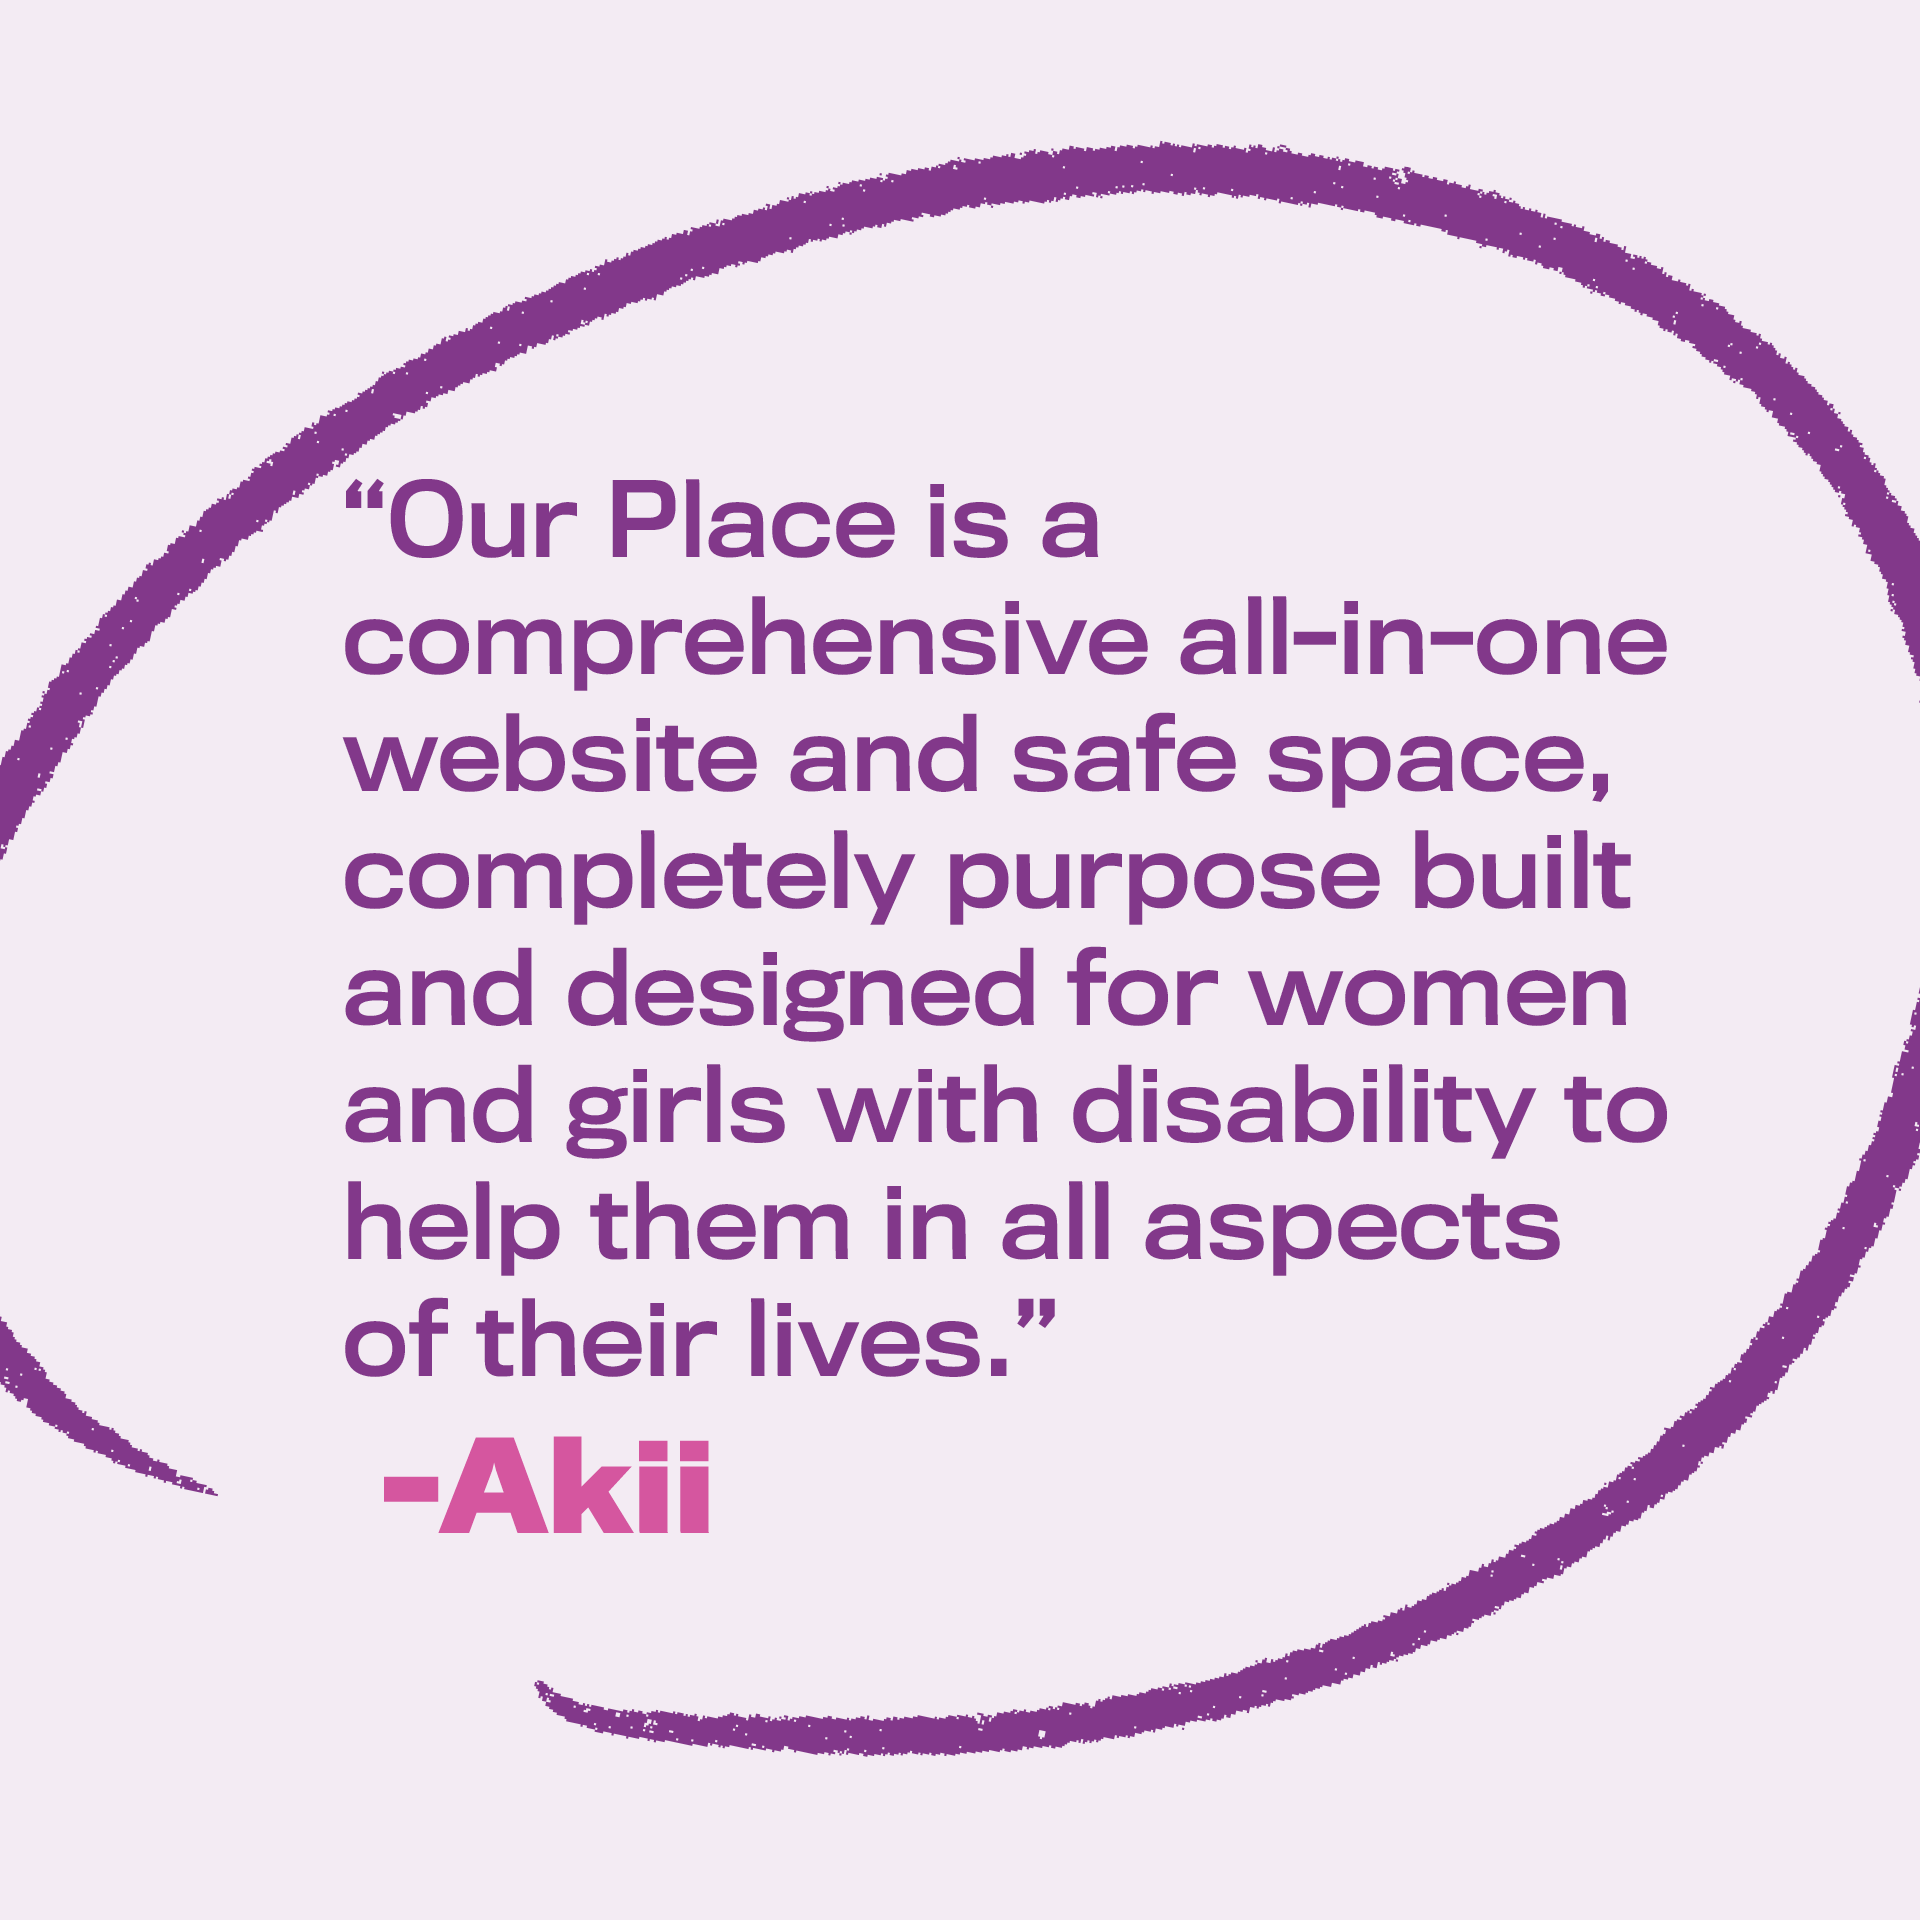 """Image text: """"Our Place is a comprehensive all-in-one website and safe space, completely purpose built and designed for women and girls with disability."""" By Akii"""